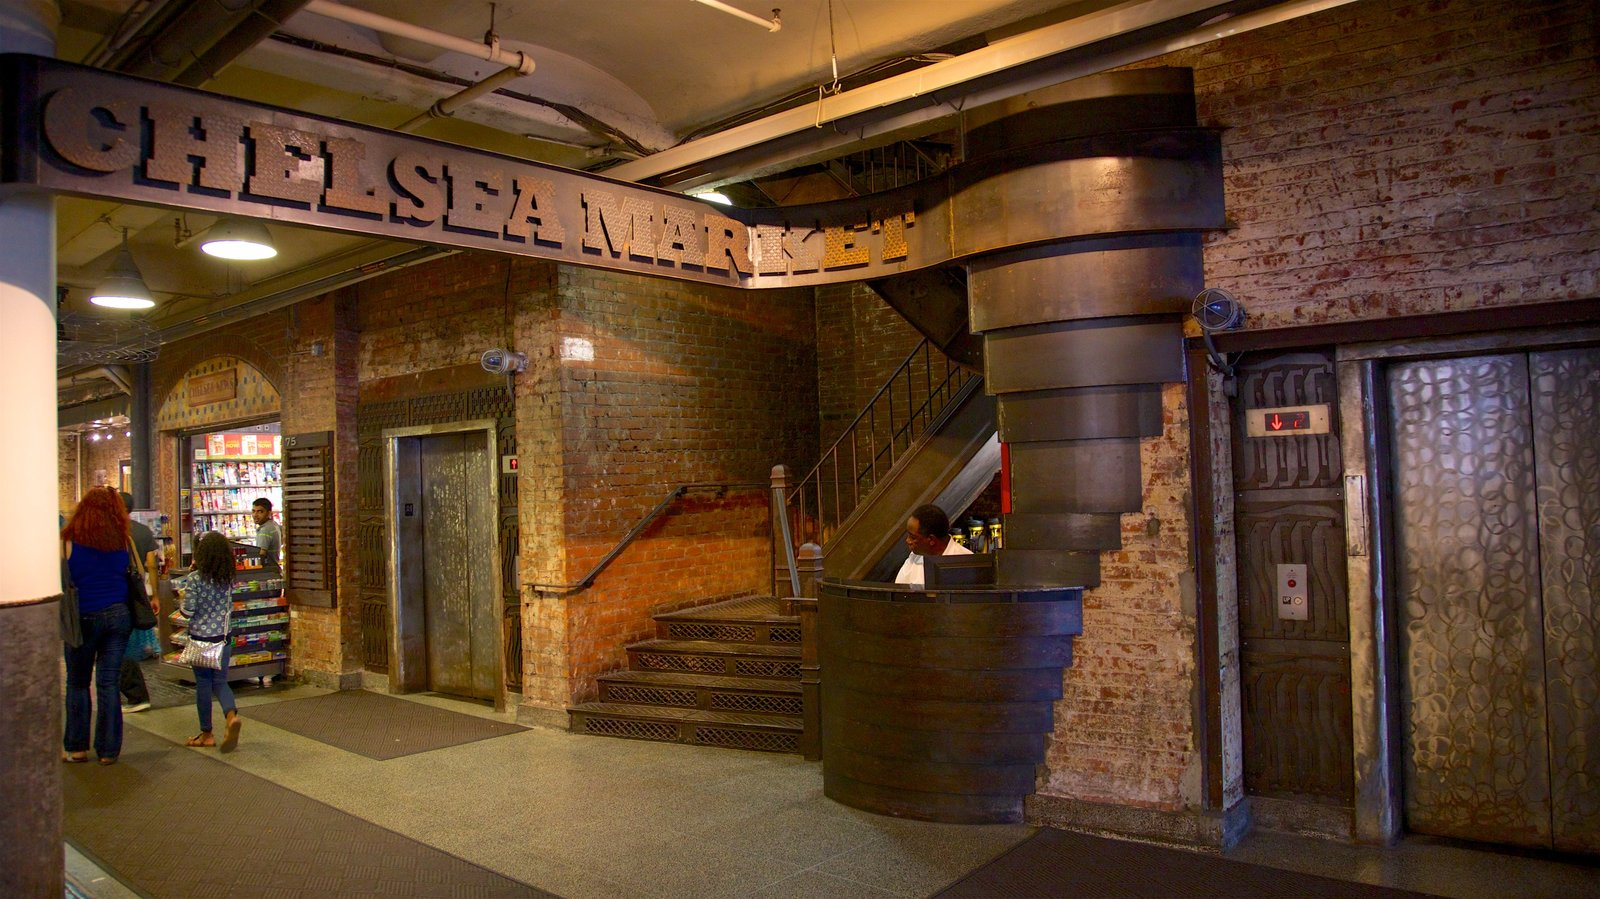 Chelsea Market showing interior views and signage